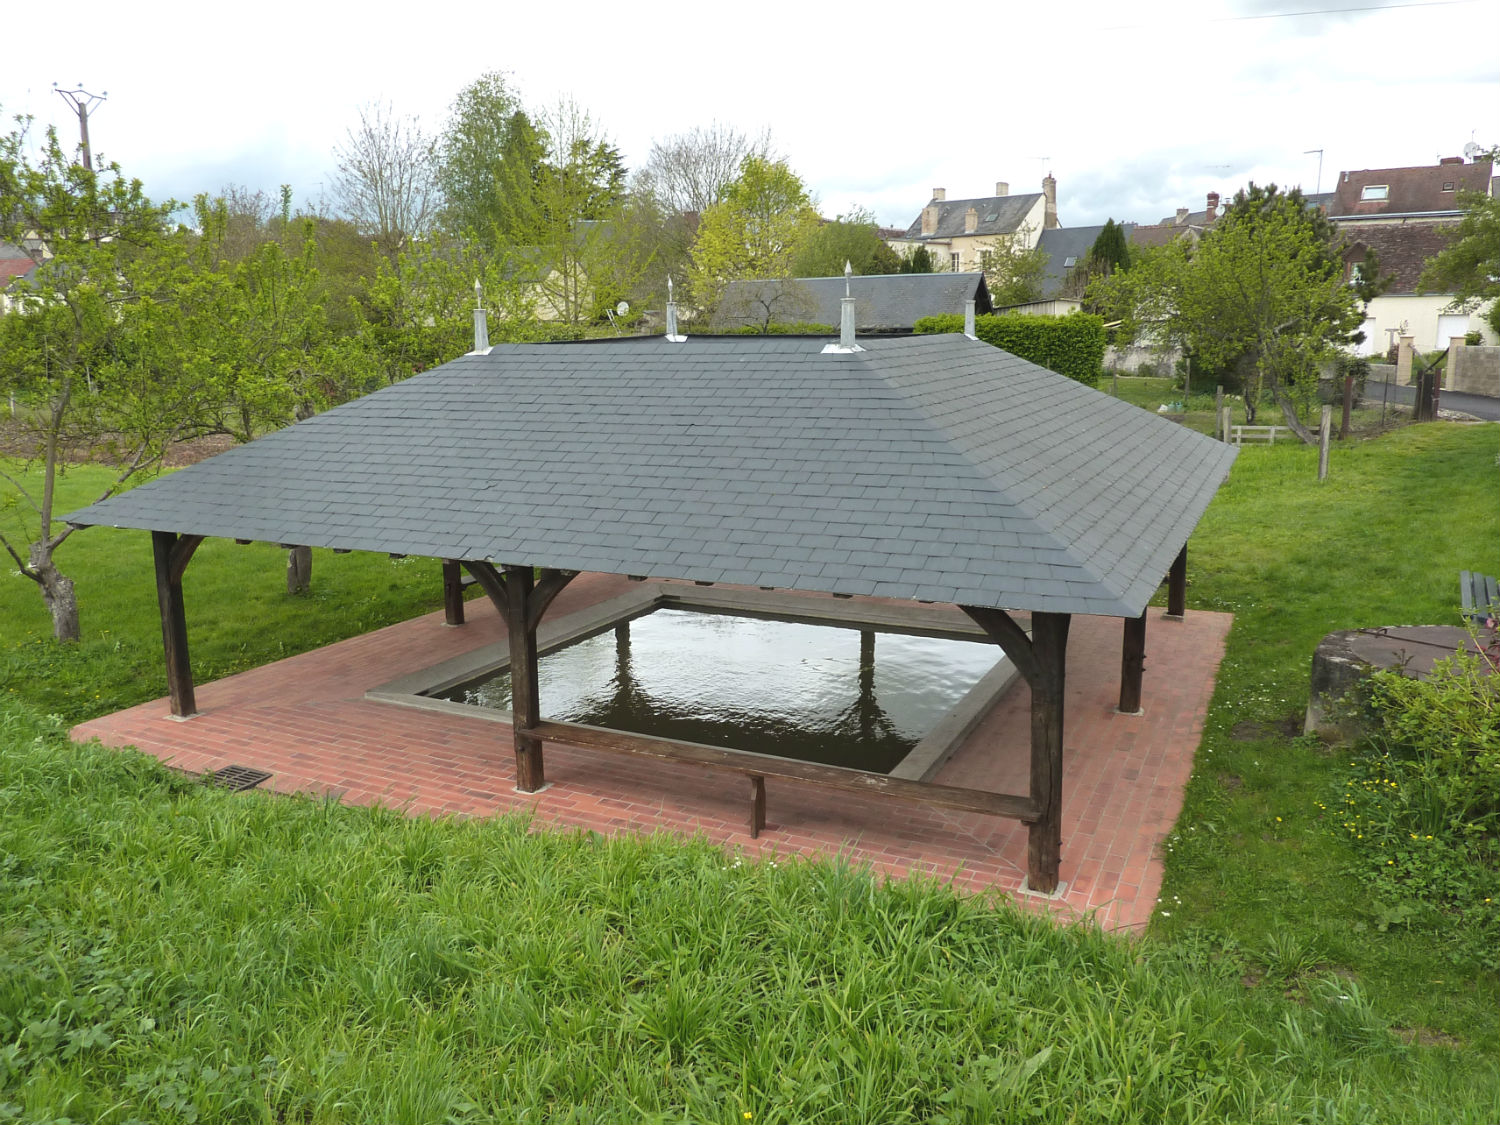 restauration du lavoir de ponc sur loir lavoirs en sarthe. Black Bedroom Furniture Sets. Home Design Ideas